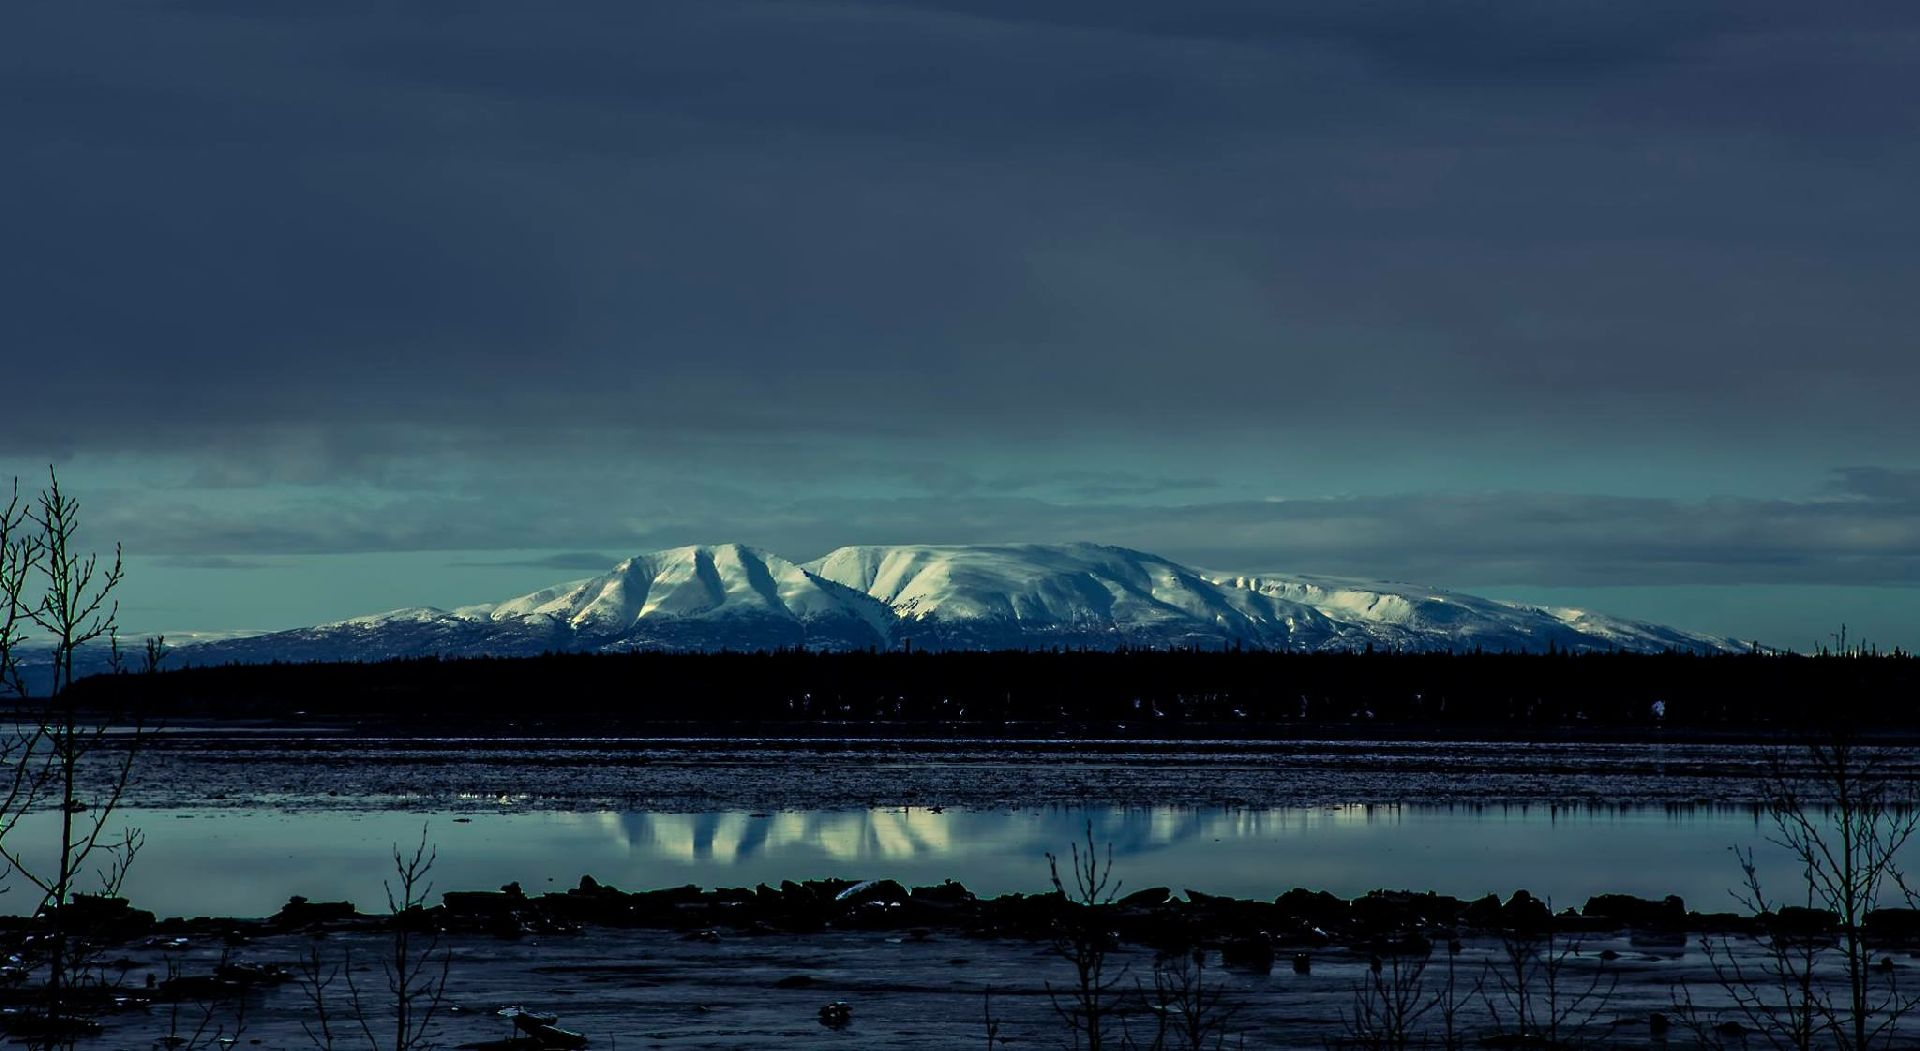 Mount Susitna also known as The Sleeping Lady under a dark layer of clouds. The mountain is located